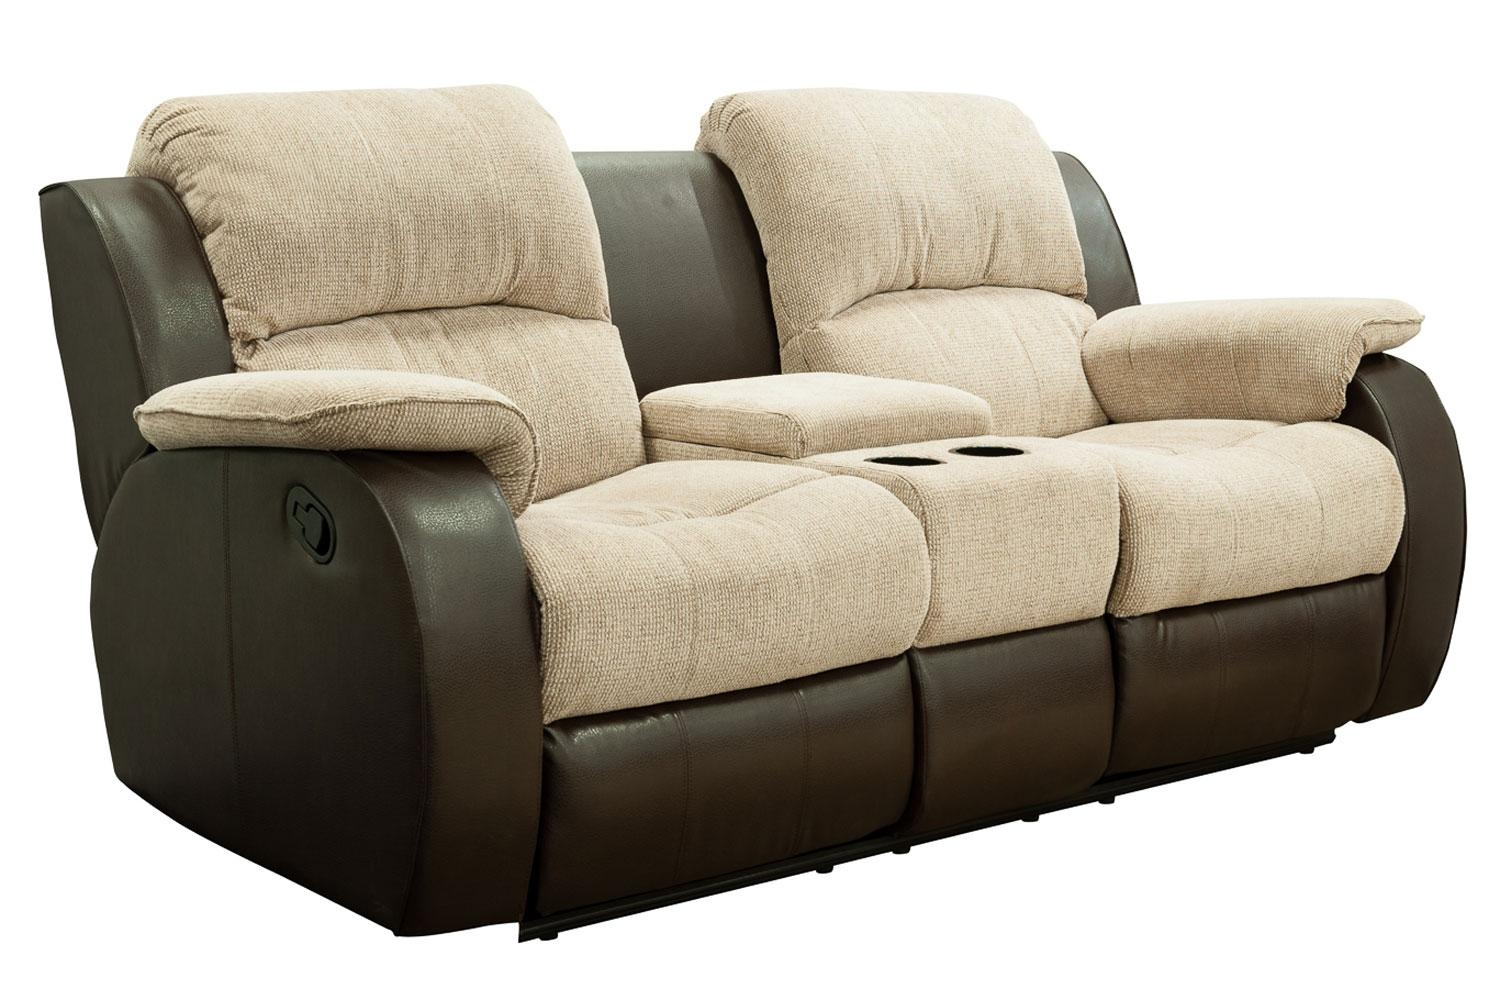 Funiture: Modern Reclining Sofa Ideas For Living Room Using Black With Regard To Sofas With Drink Holder (Image 9 of 20)